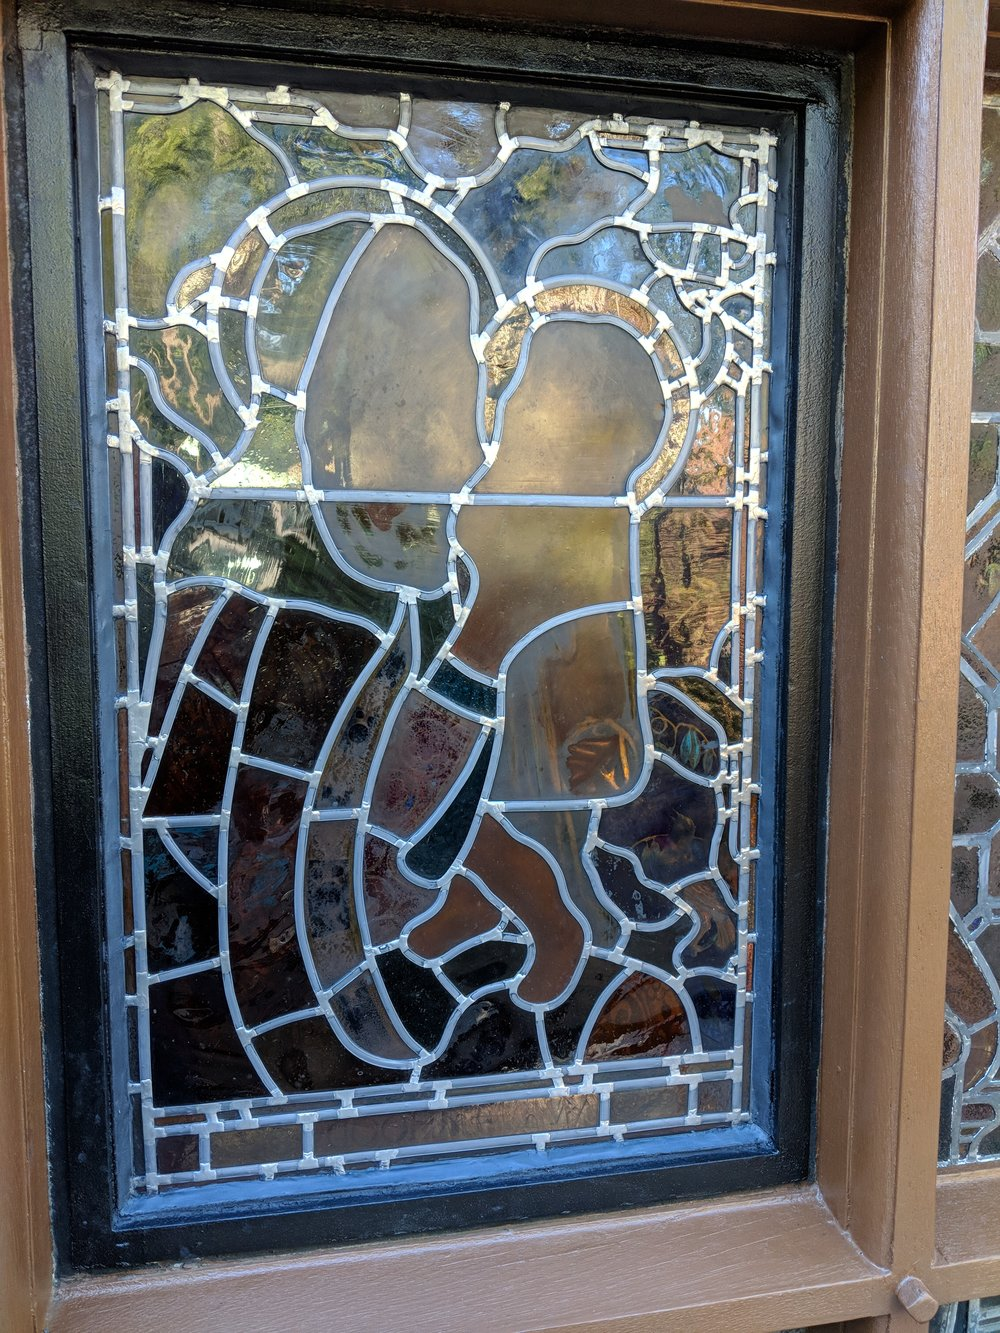 The window is reinstalled, and ready to shine for the next 100 years!